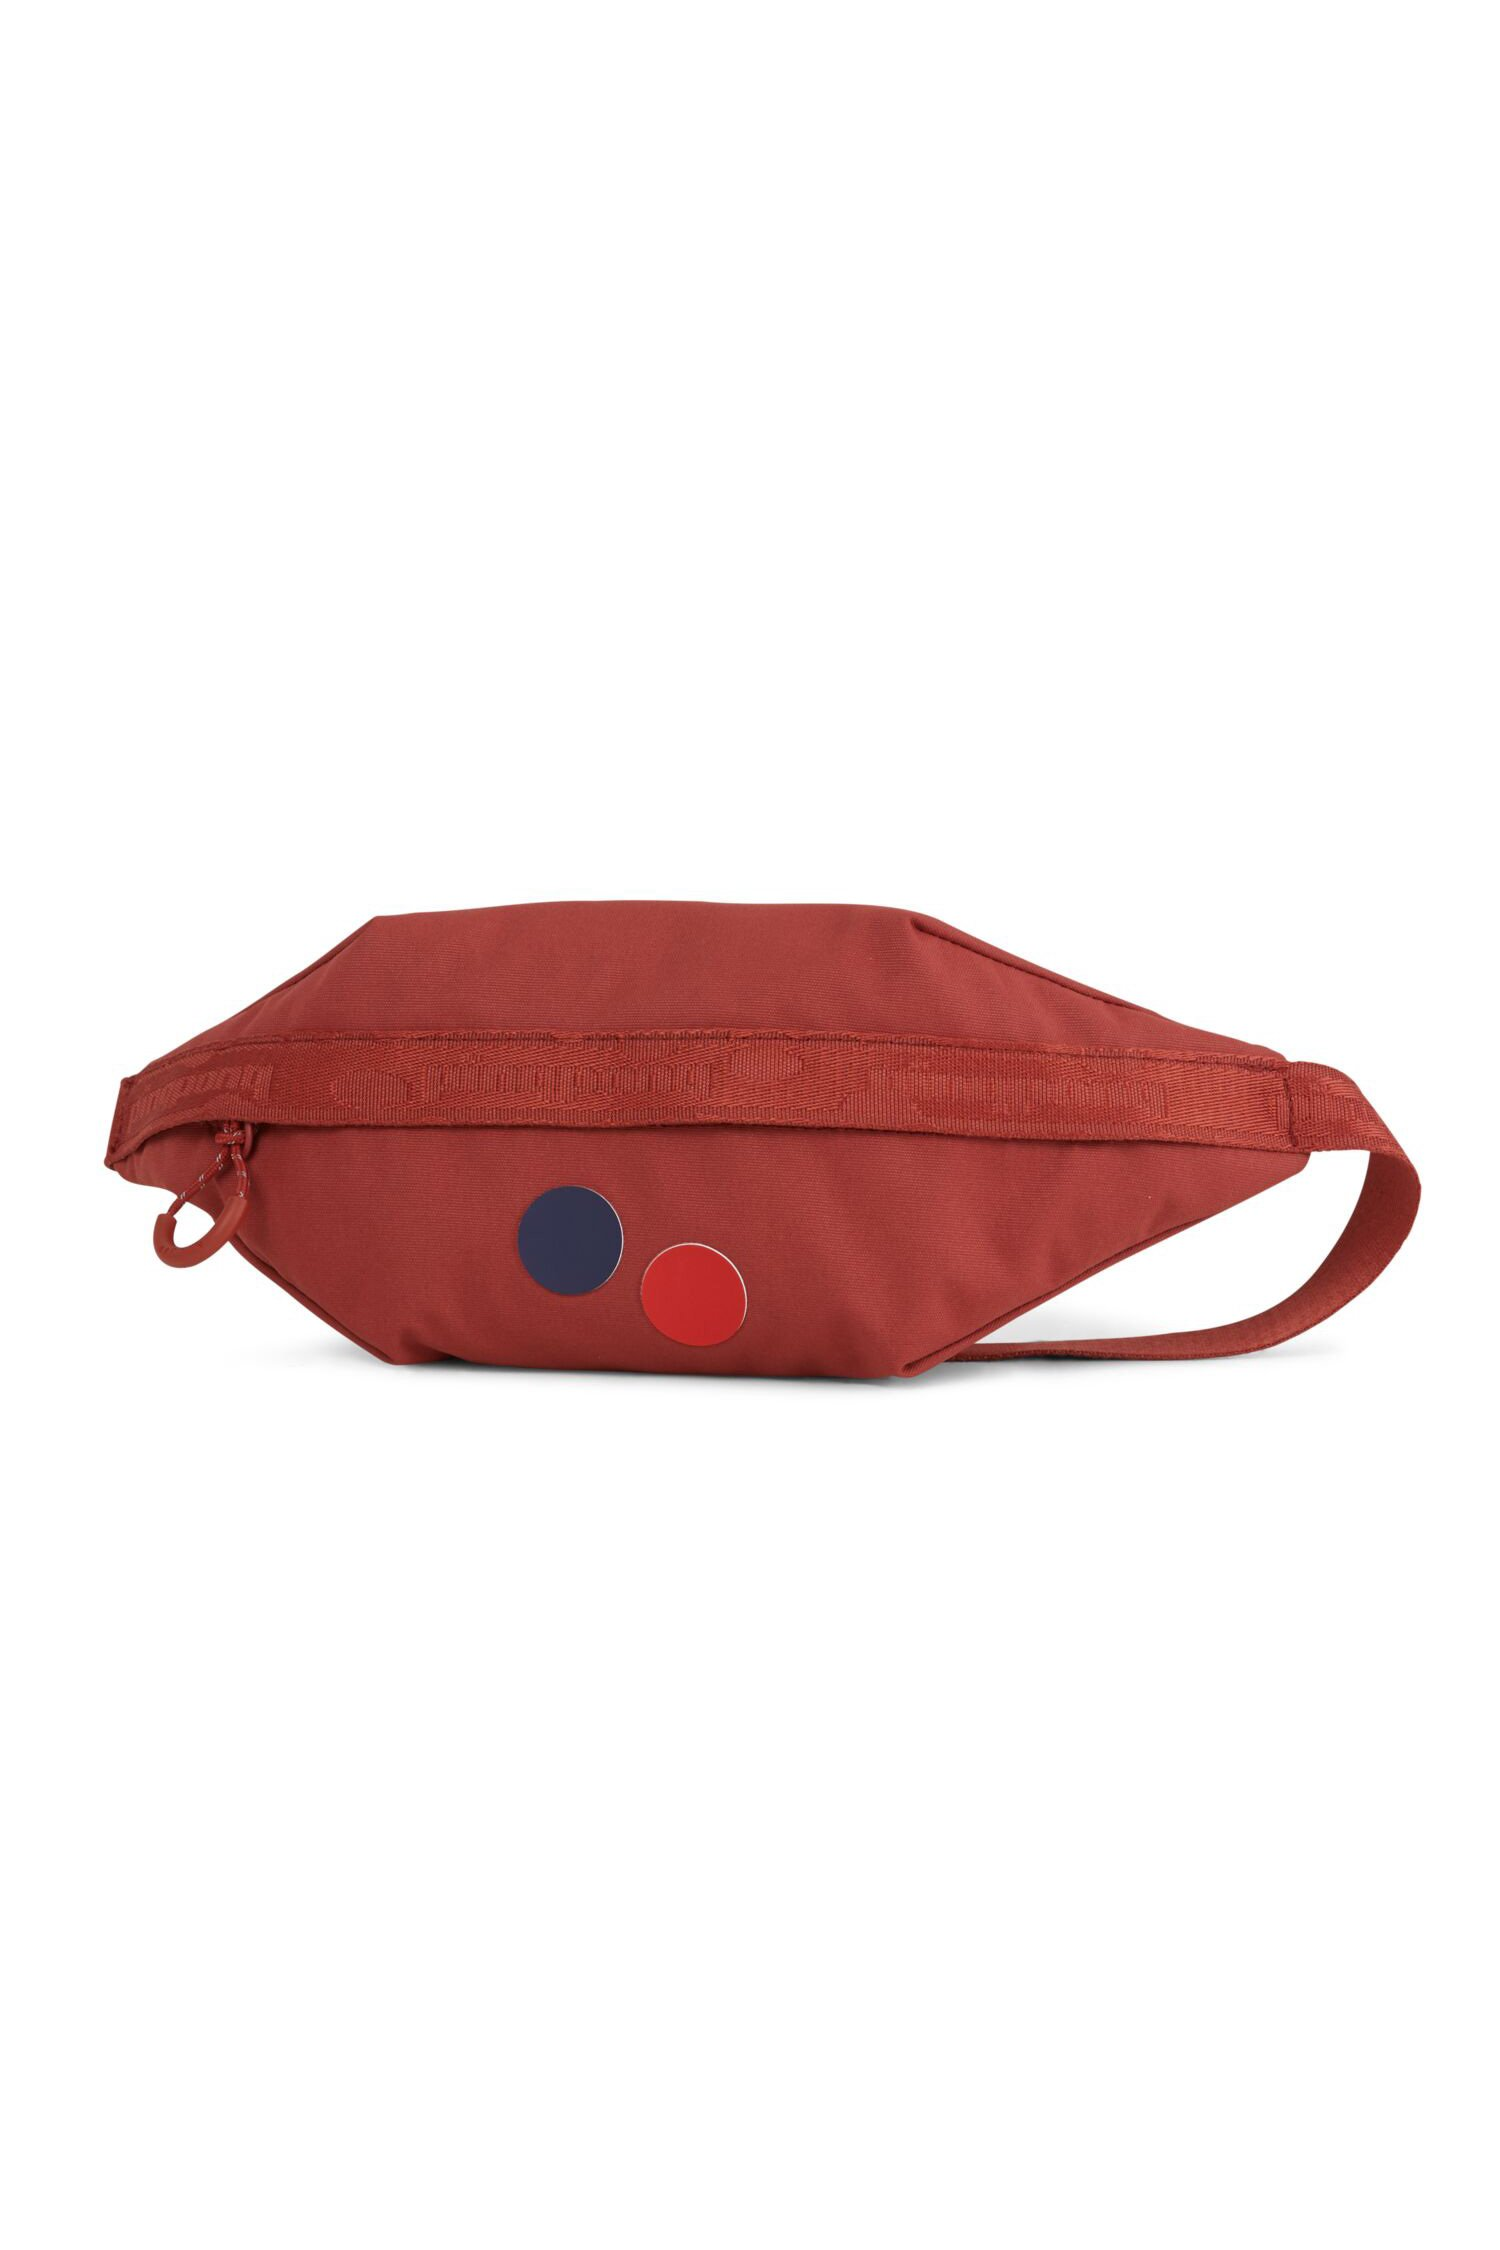 Bauchtasche Nik Blur Red from LOVECO